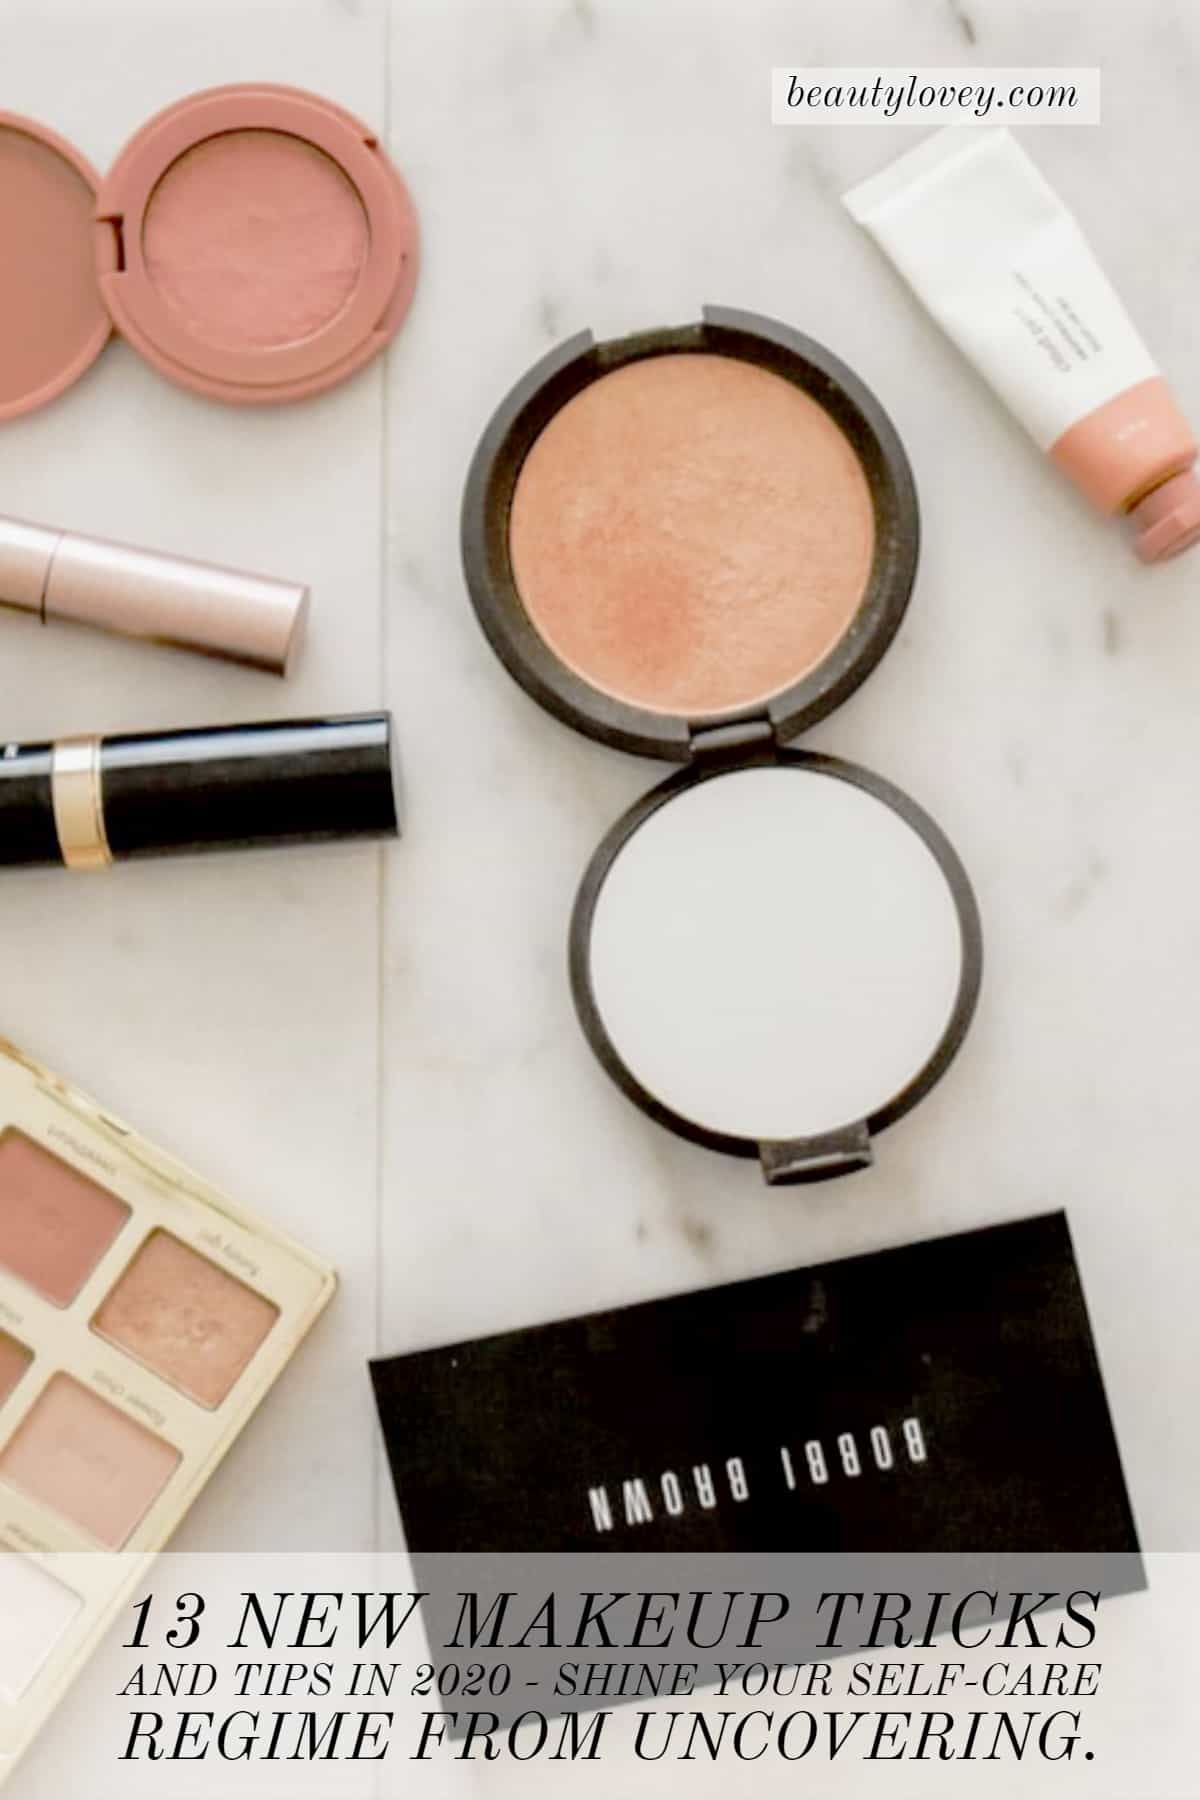 13 New Makeup Tricks And Tips In 2020 The Term Makeup Is So Fancy